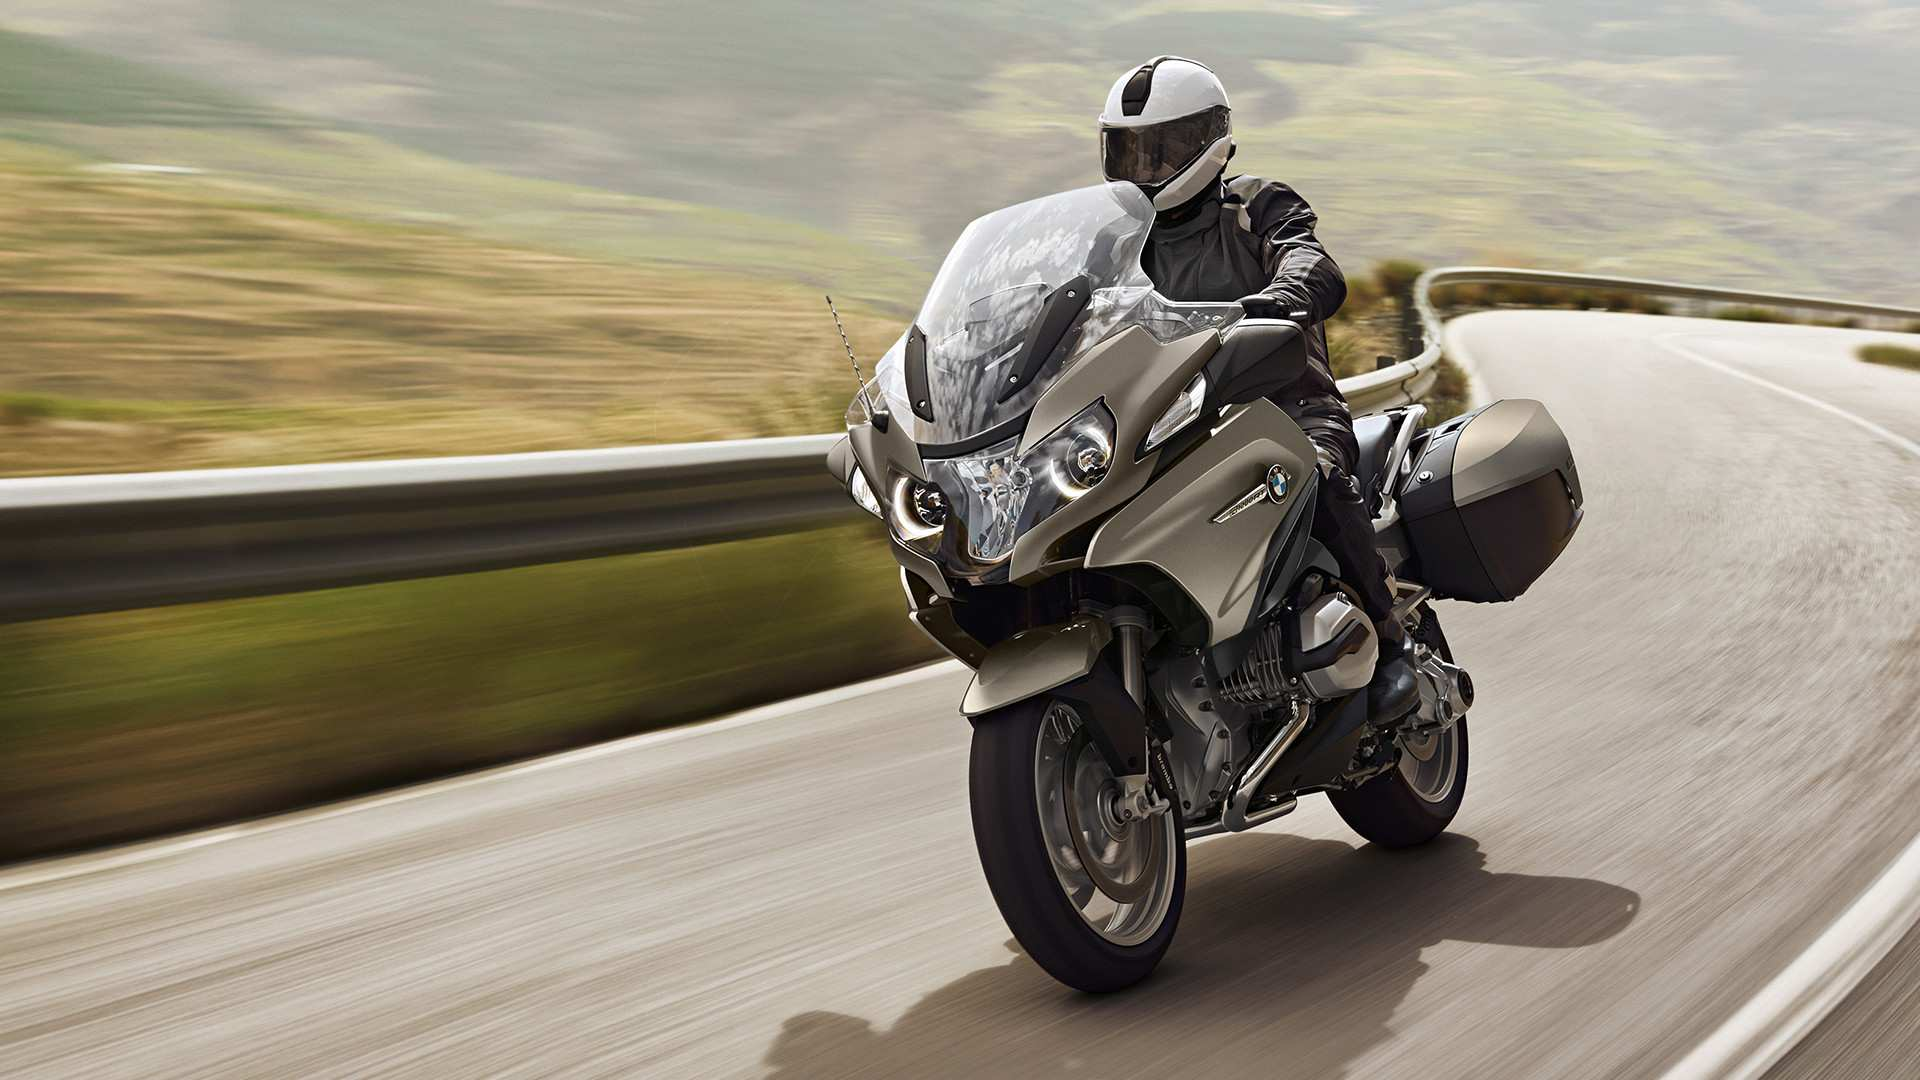 89 Gallery of BMW R1200Rt 2020 Images for BMW R1200Rt 2020